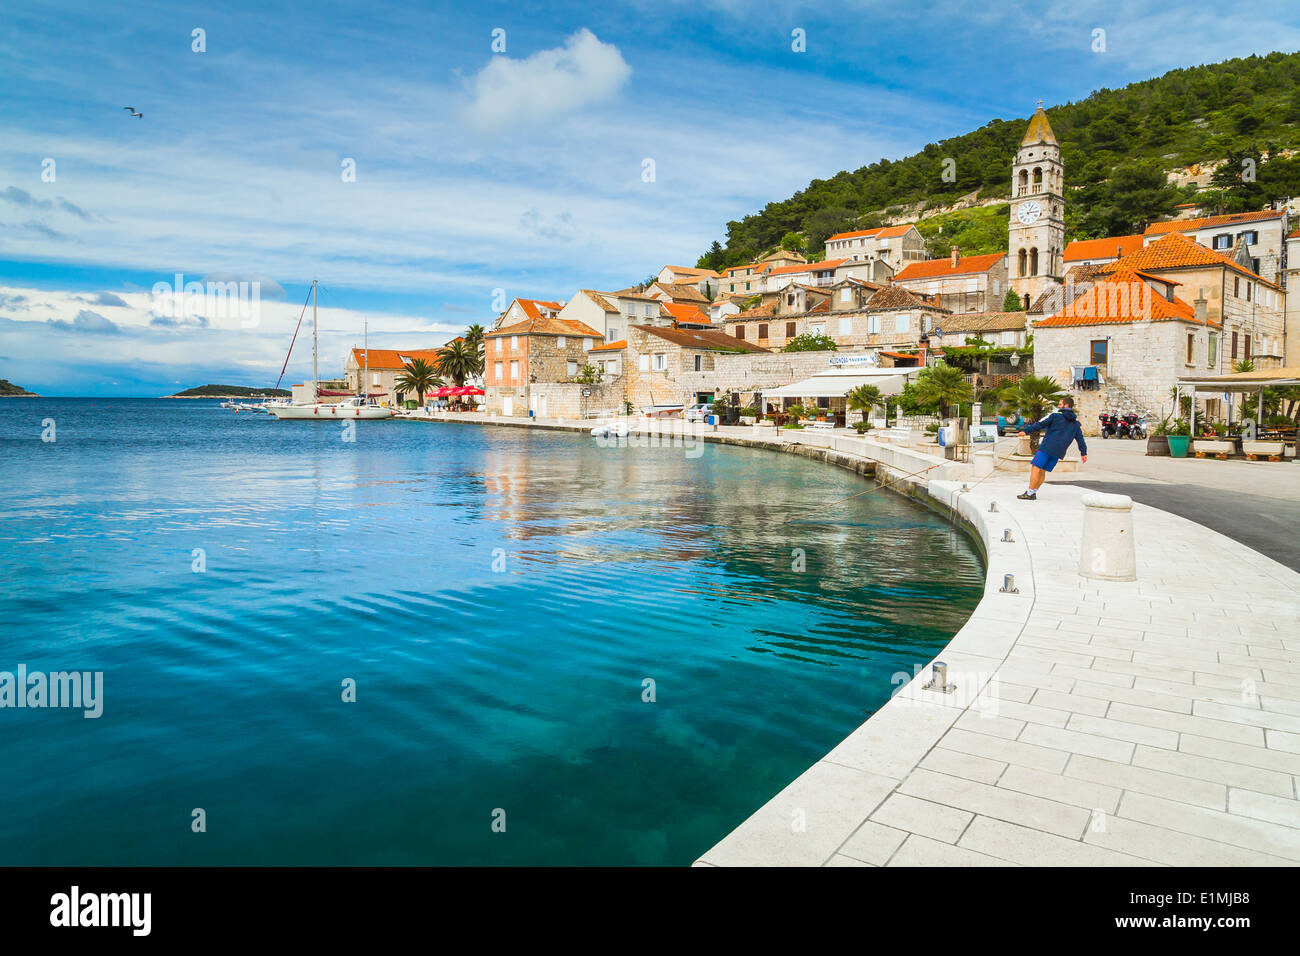 A scenic view of the east of the town of vis in dalmatia croatia where the church of st cyprian and justin dominates the skyline - Stock Image